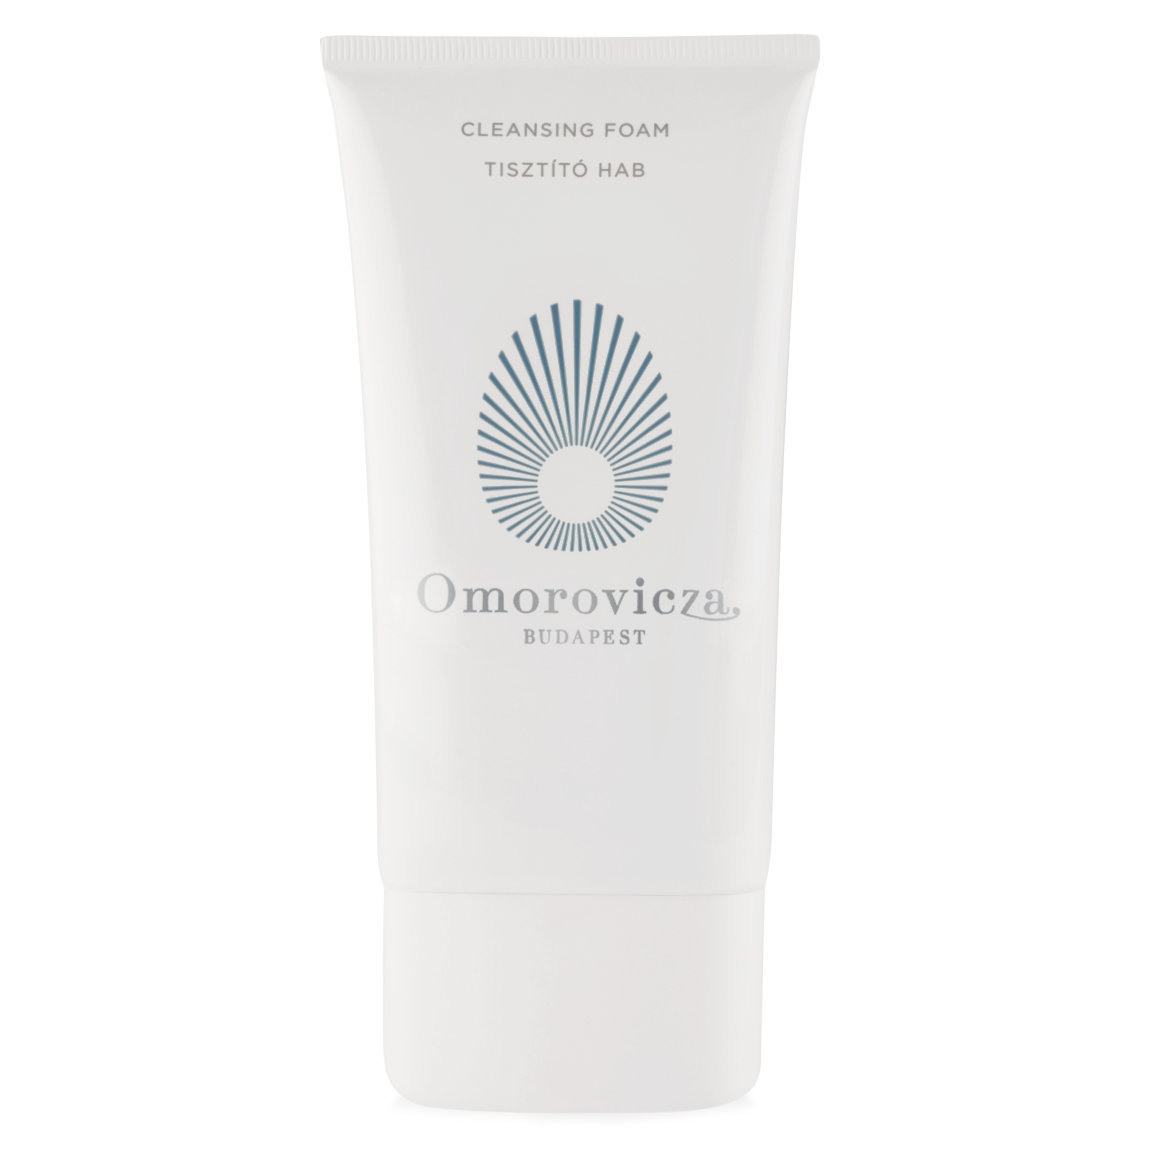 Omorovicza Cleansing Foam 150 ml product swatch.